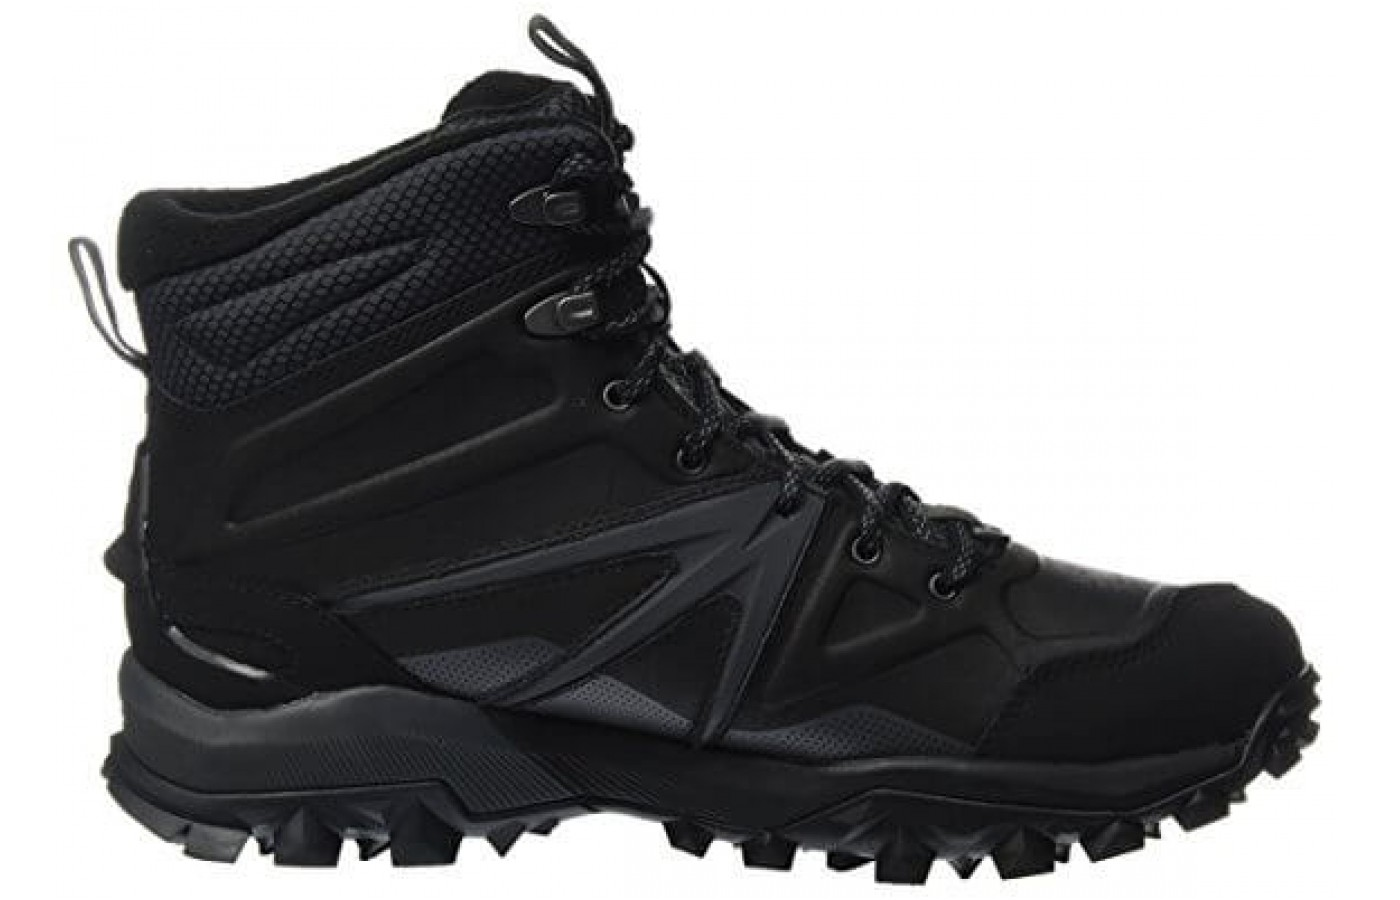 The Merrell Capra Glacial Ice side view